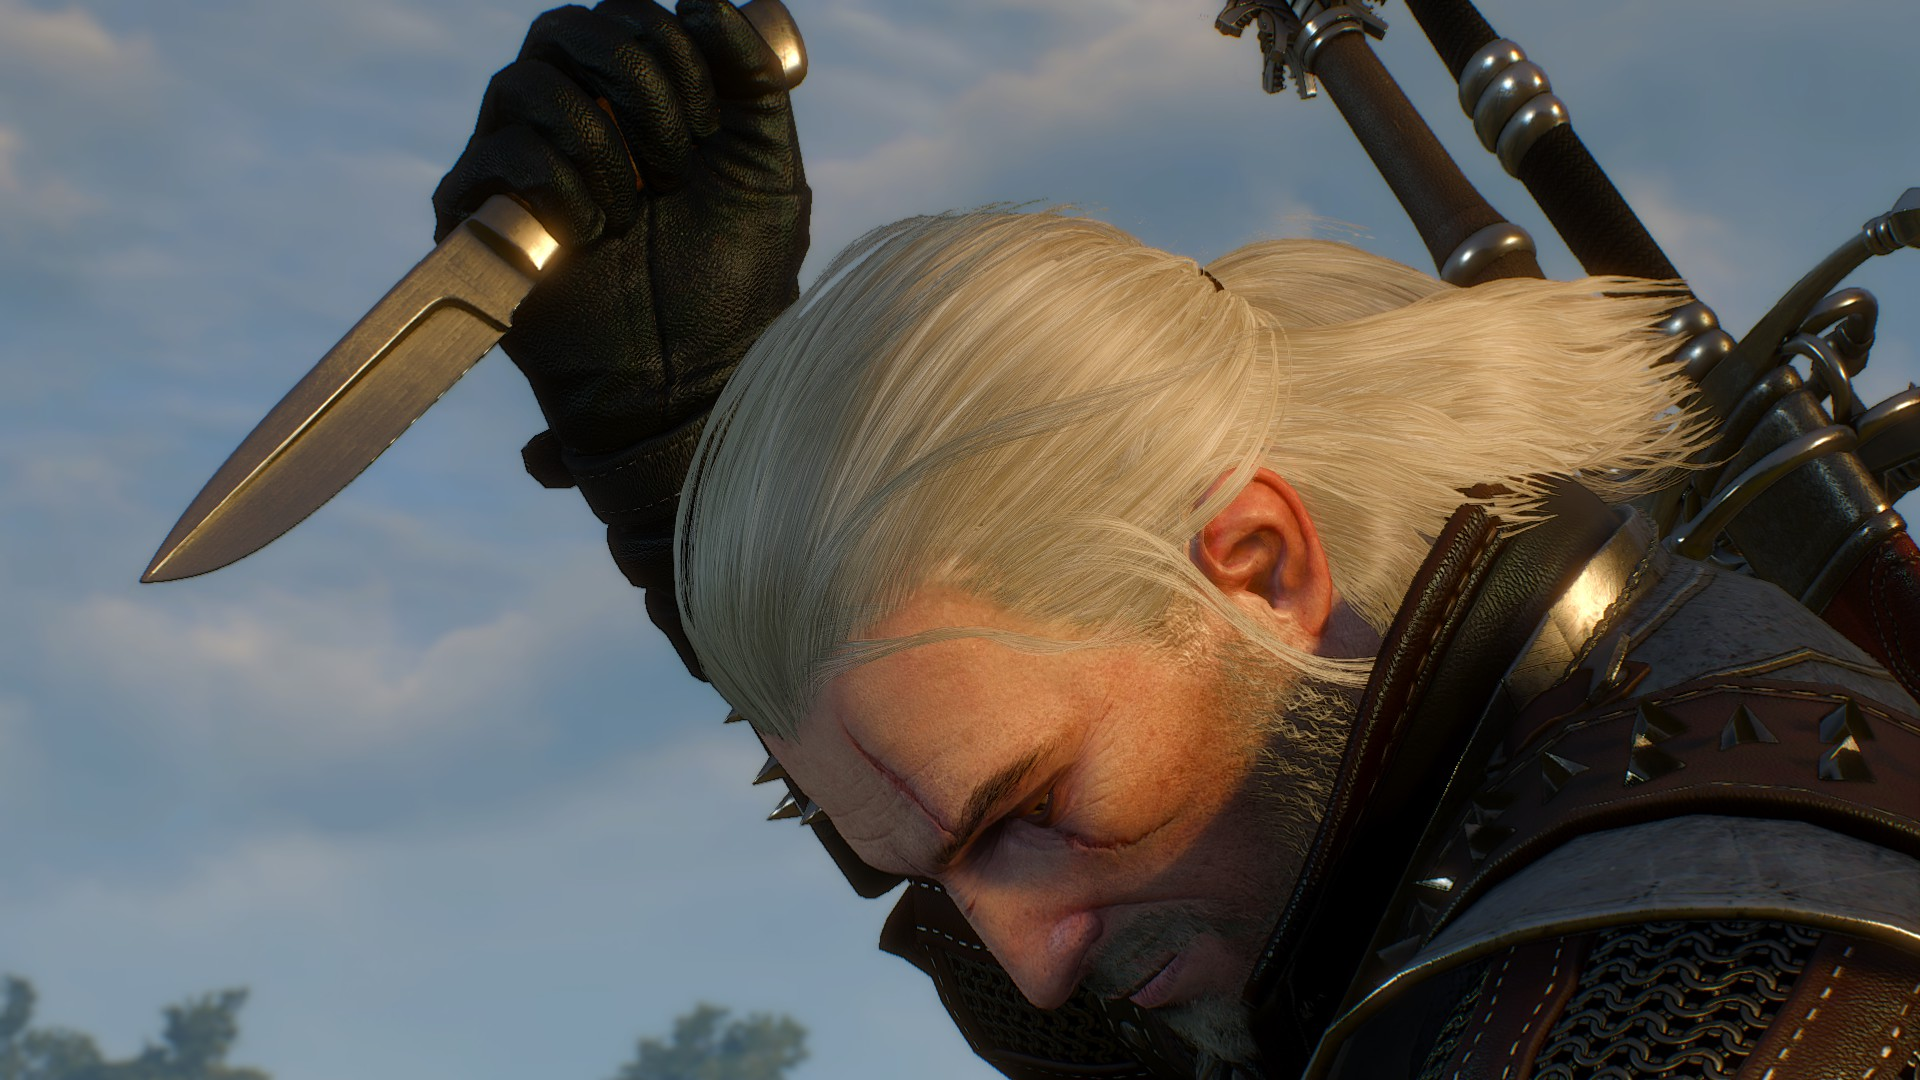 20180826183314_1.jpg - Witcher 3: Wild Hunt, the